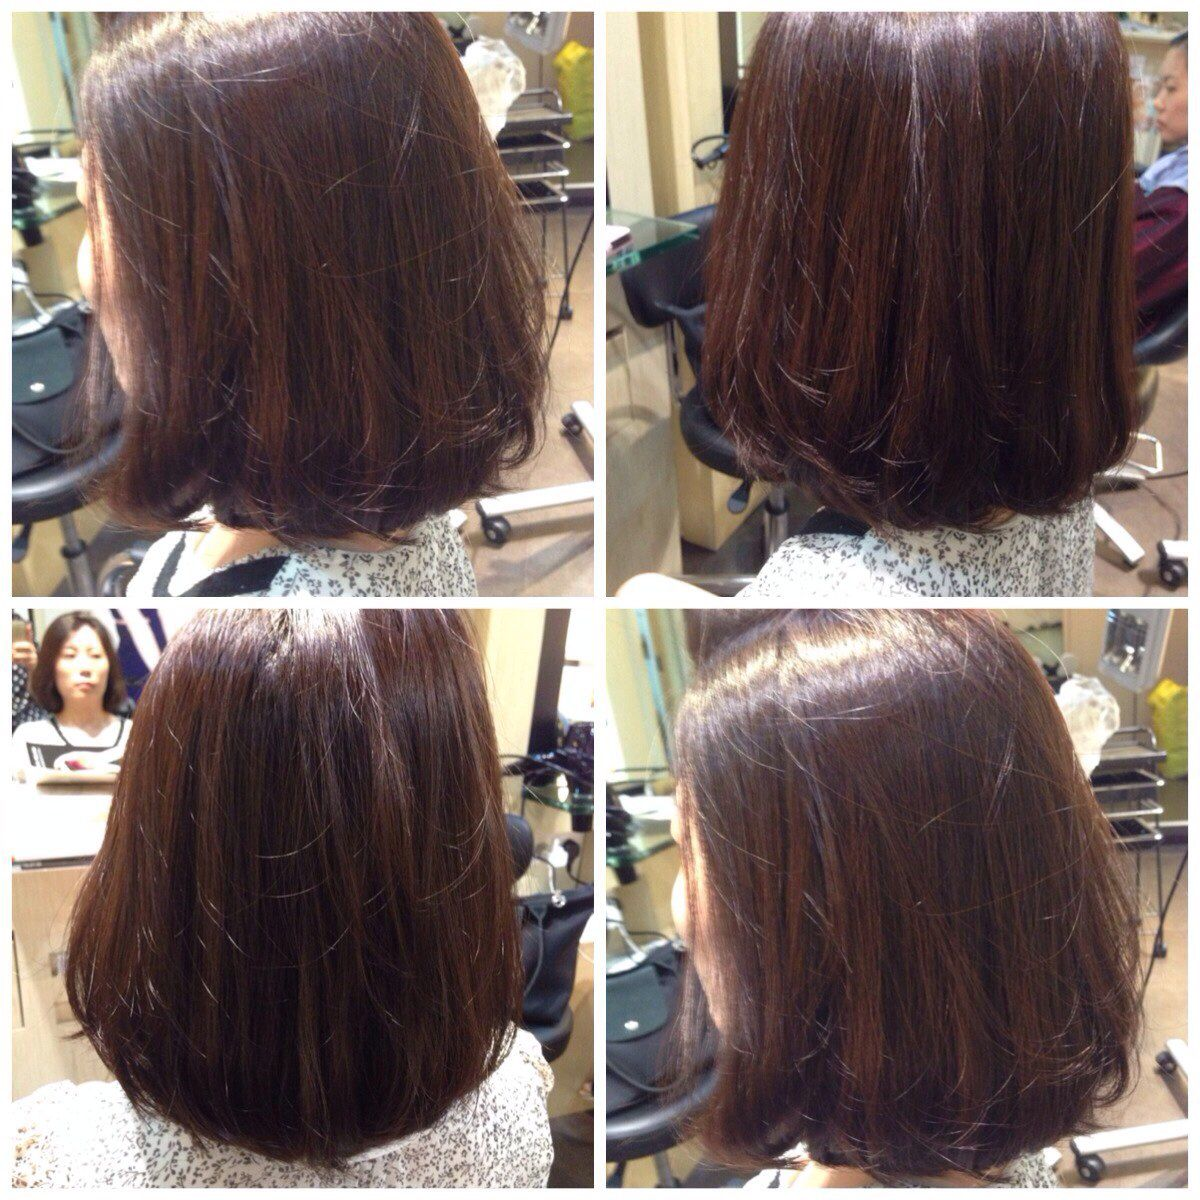 Smooth volume rebonding hair  Short hair haircuts, Layered